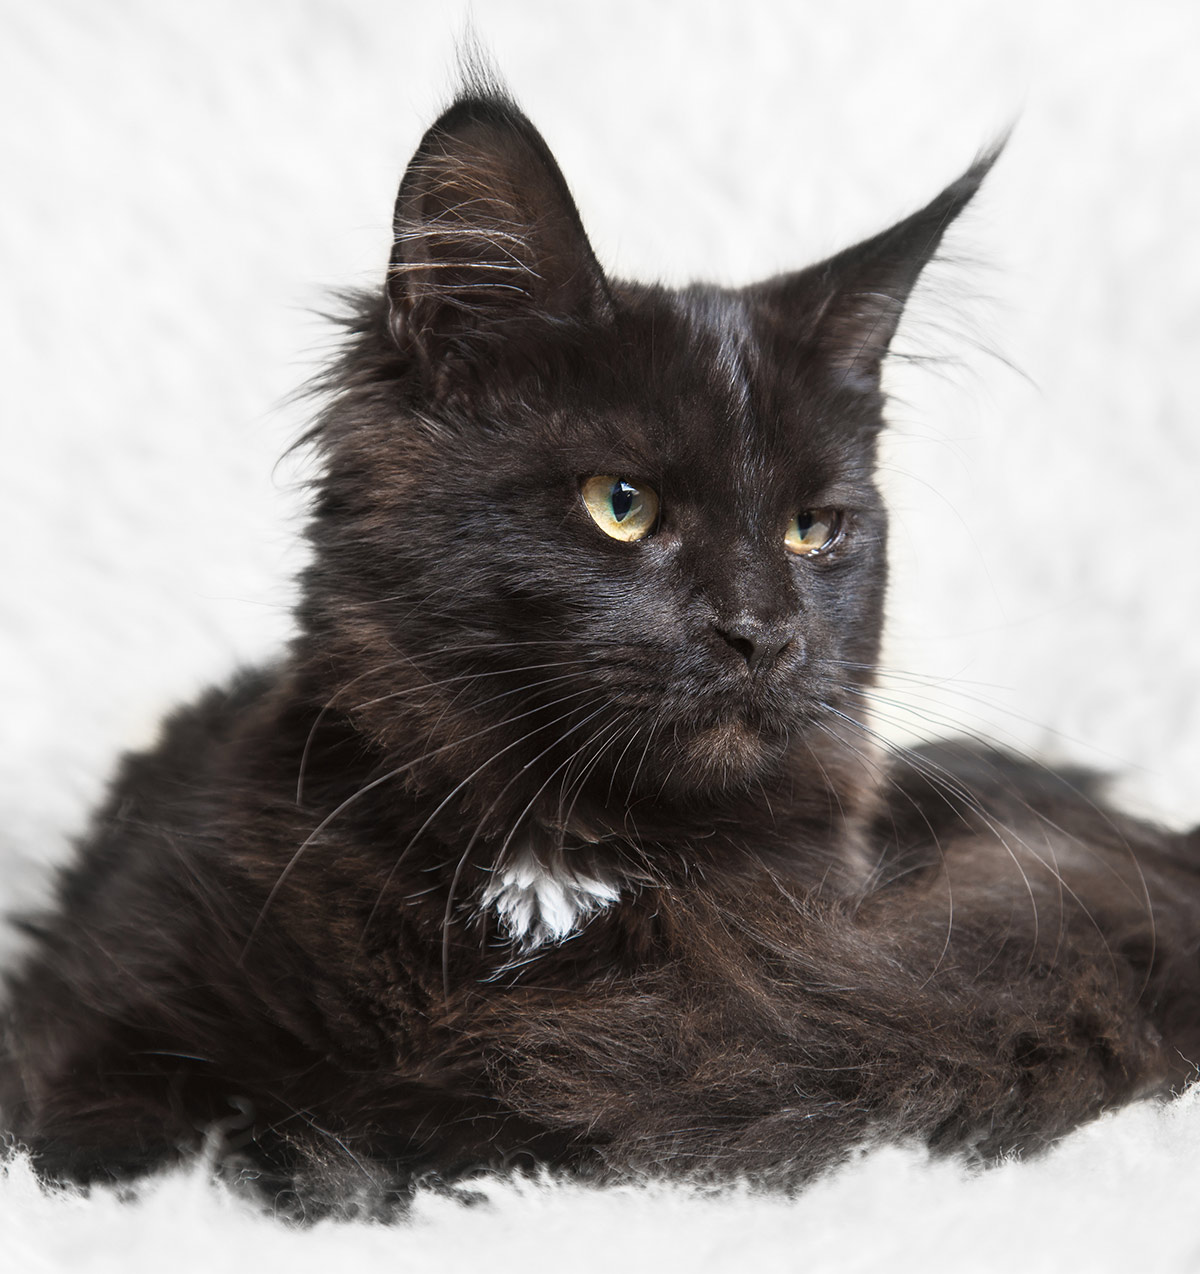 Pictures of black Maine Coon cats